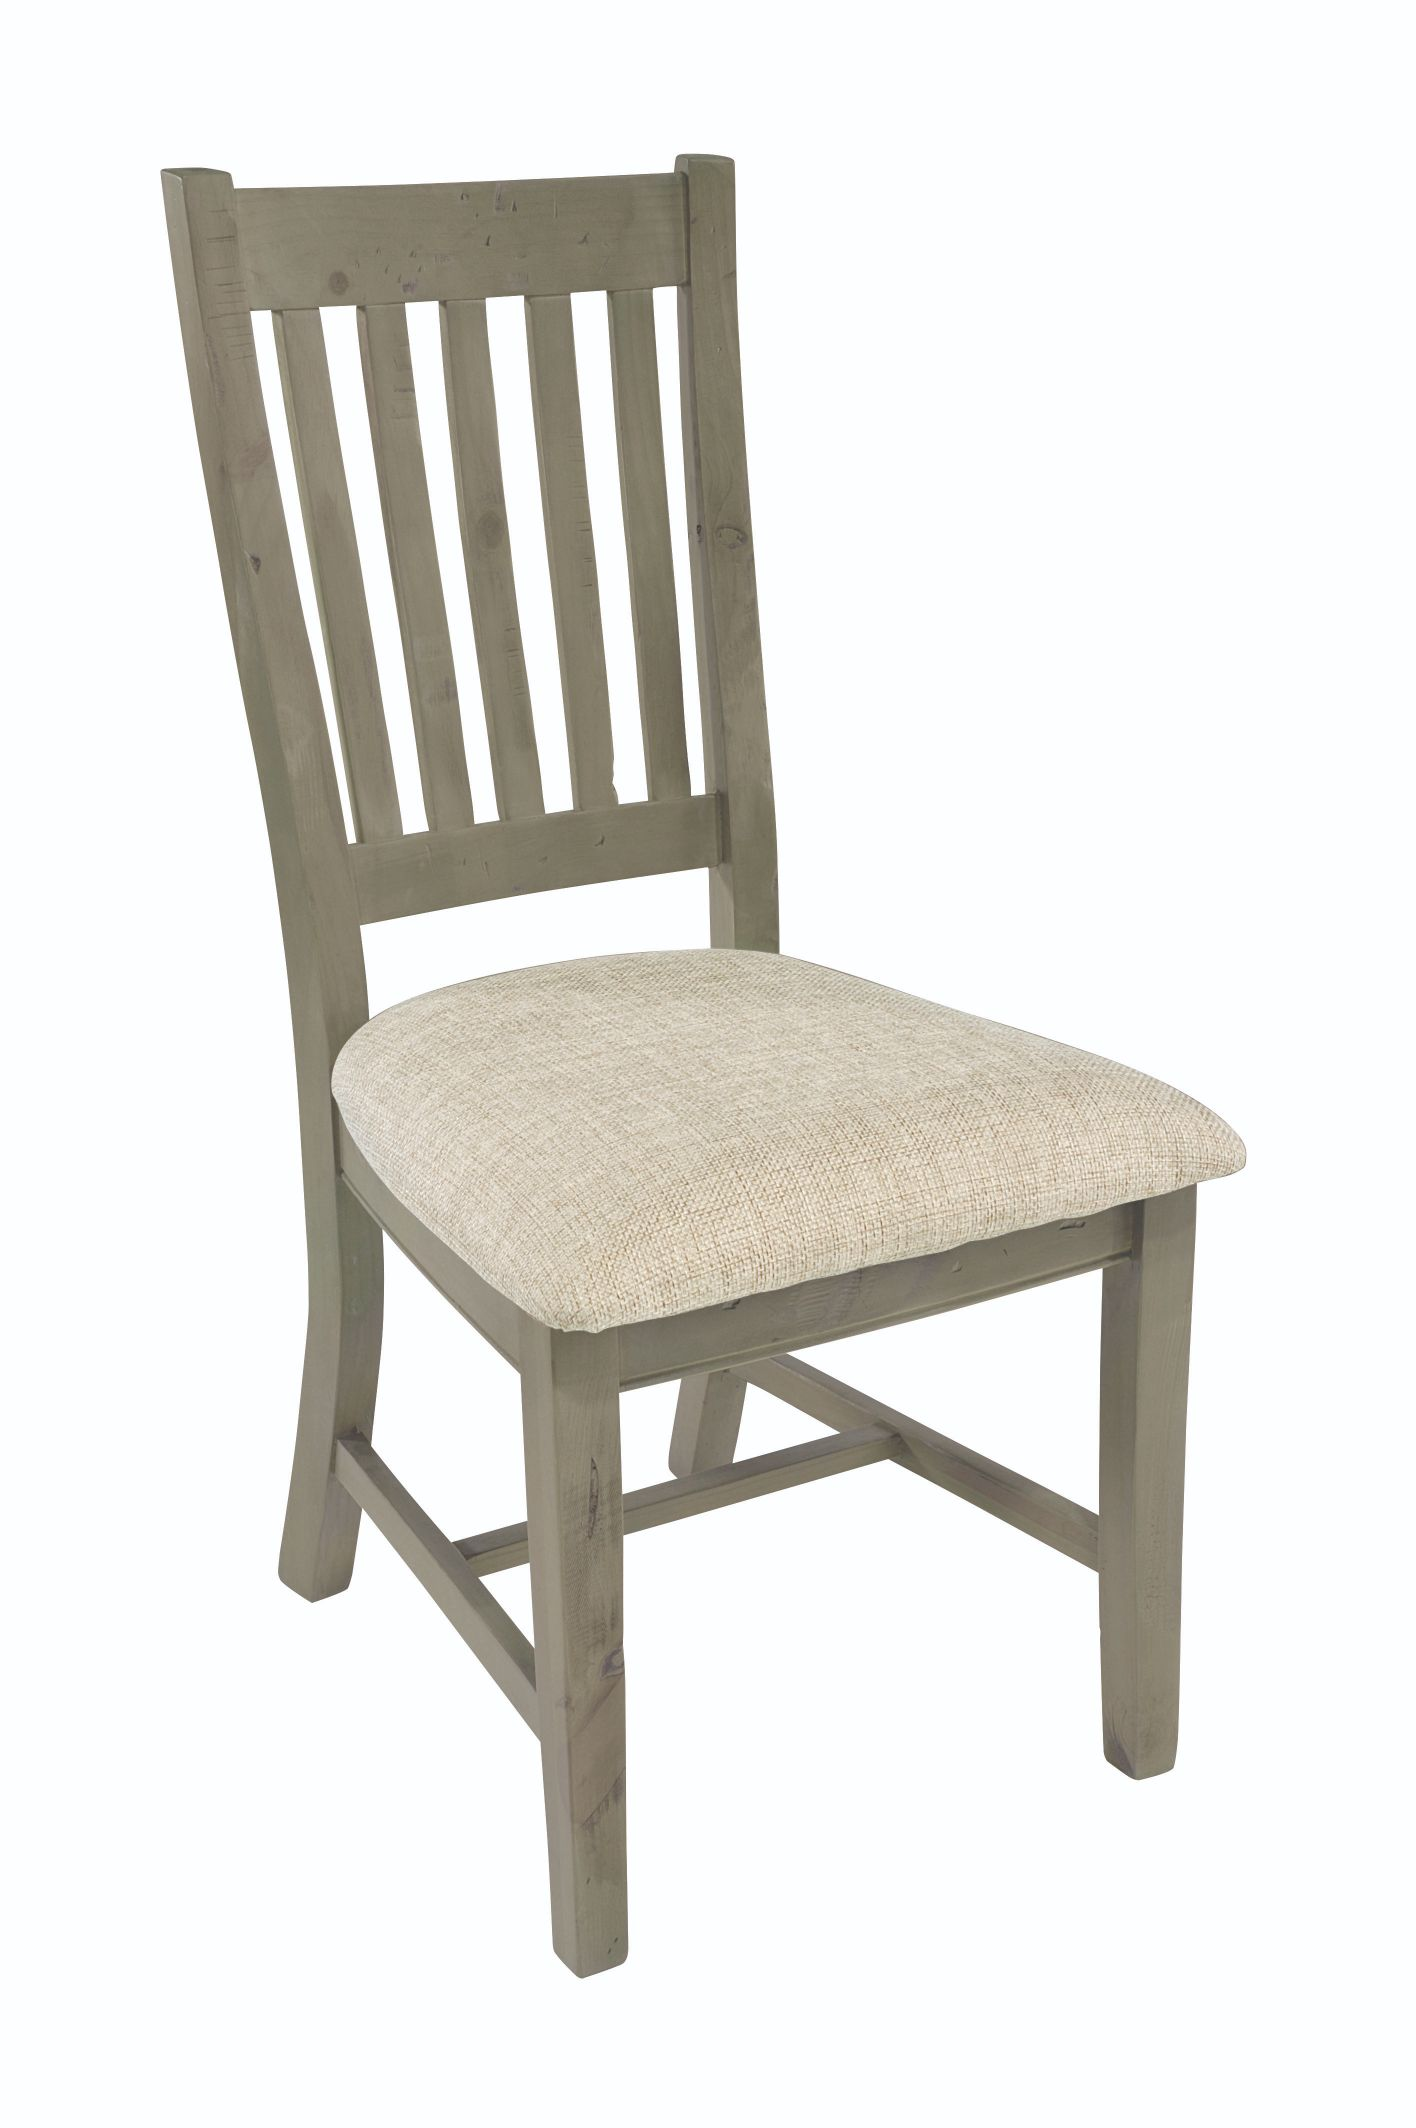 SALTASH DINING CHAIR Driftwood & Material Pad